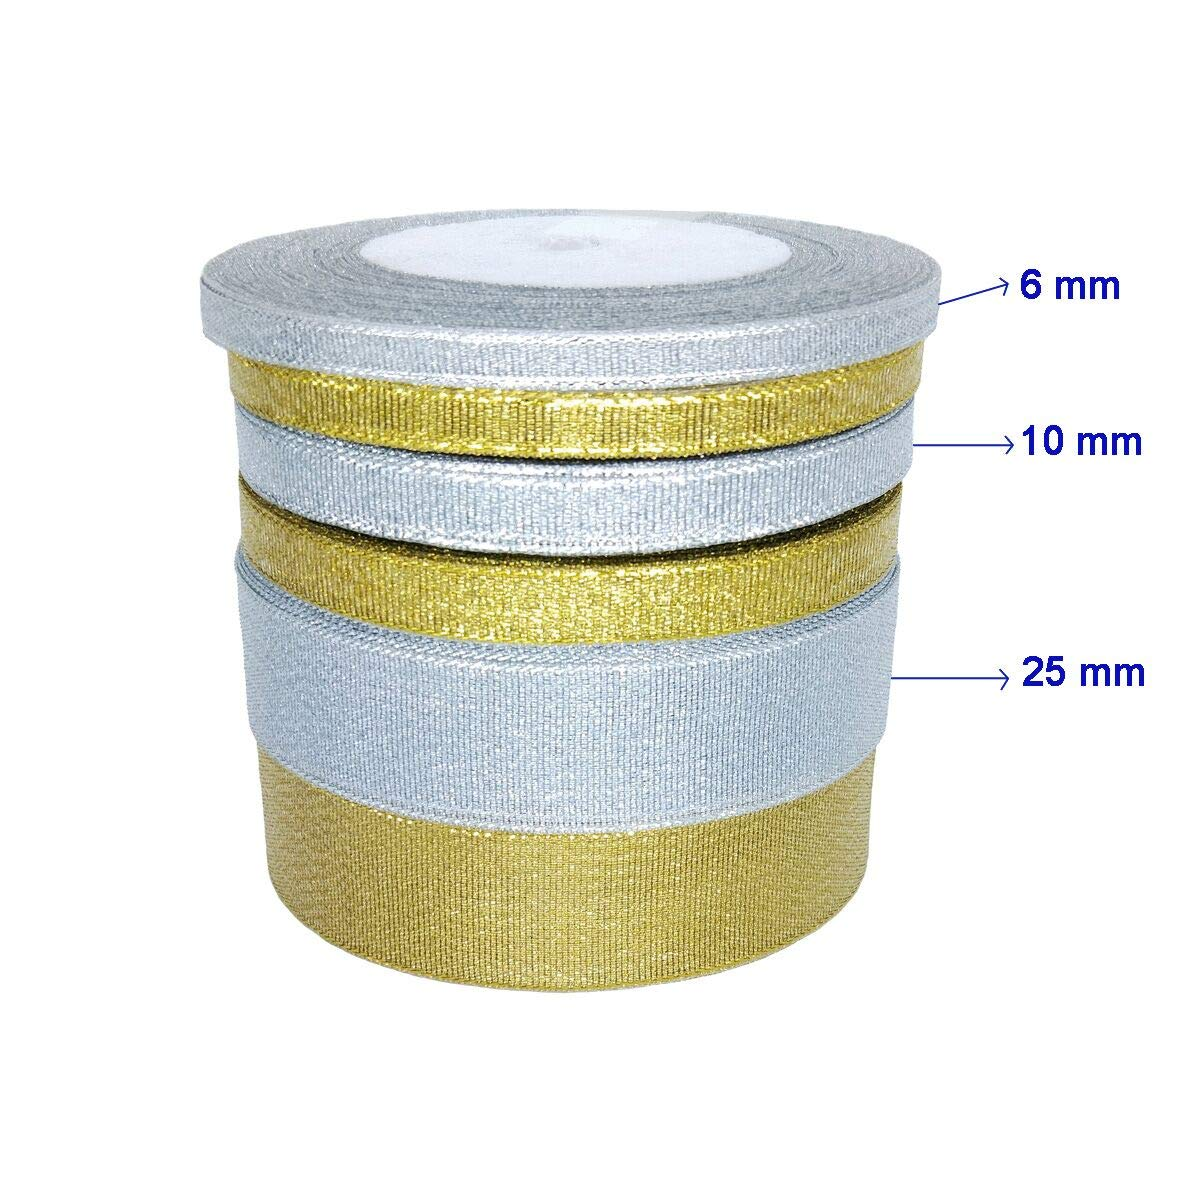 Beaulegan Glitter Ribbons - 10 mm 50 Yards Trimmings for Crafts, Gift Wrapping, Wedding Decoration (25 Yards/Roll, 2 Rolls), Silver Ribbon-gliter-10m-sil